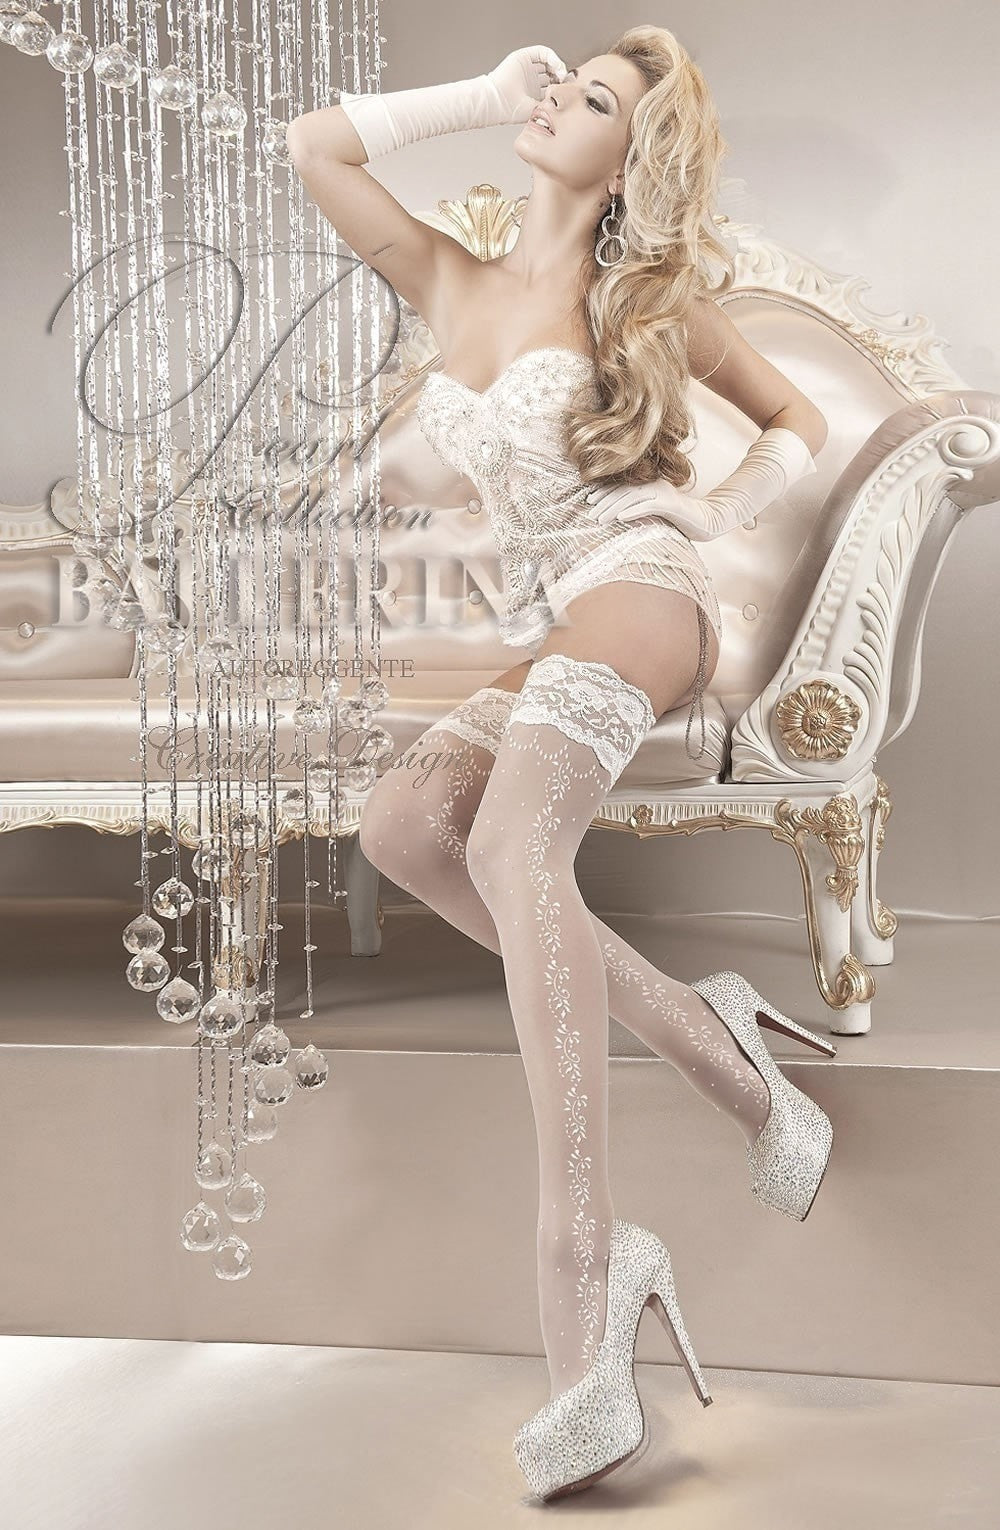 Ballerina Hold Ups 119 (White) - Hold Up Stockings - Ballerina - Charm and Lace Boutique